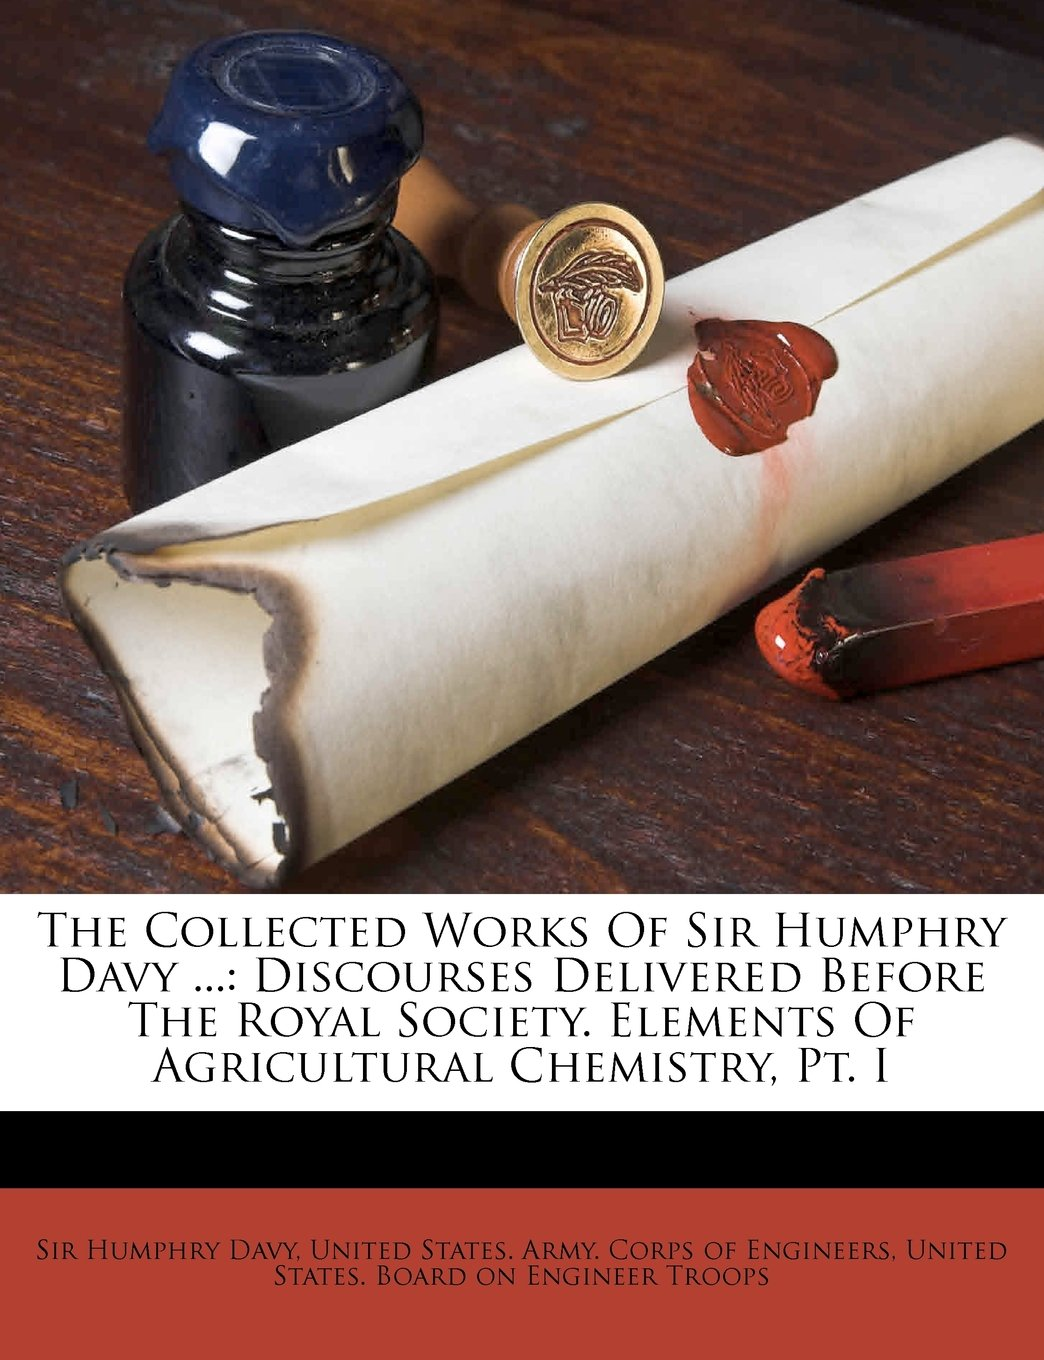 Download The Collected Works Of Sir Humphry Davy ...: Discourses Delivered Before The Royal Society. Elements Of Agricultural Chemistry, Pt. I PDF